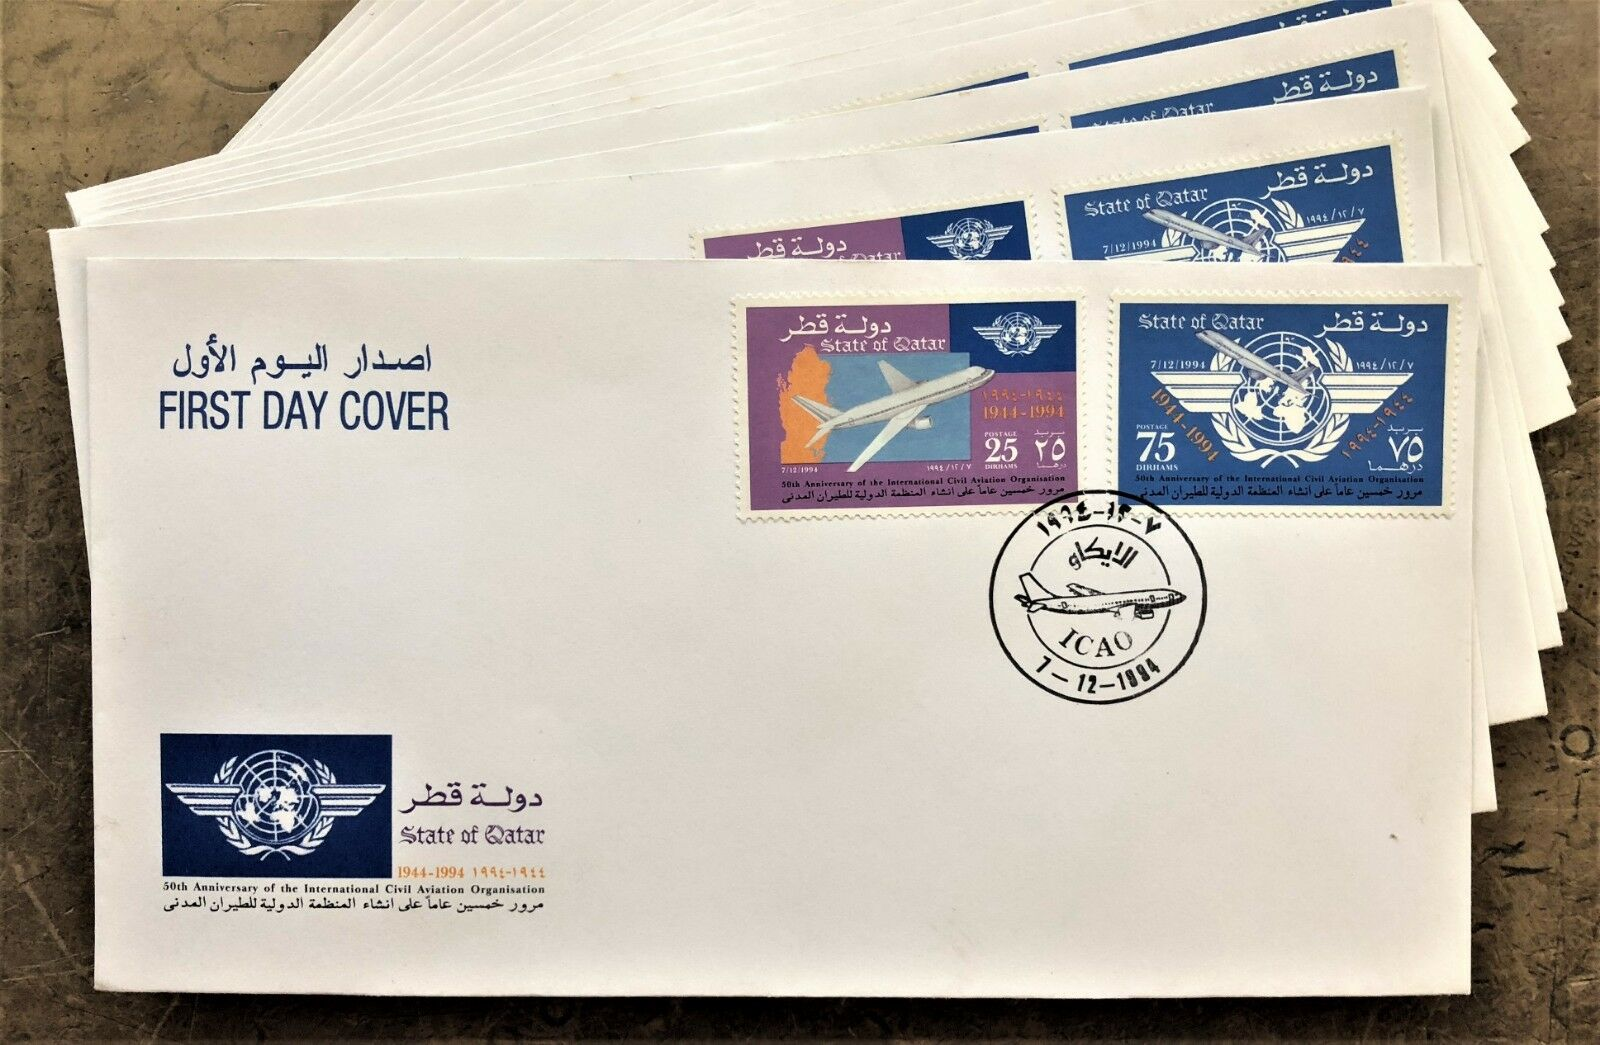 WHOLESALE 600 (SIX HUNDRED) QATAR AVIATION FIRST DAY COVERS POSTMARKED ICAO 1994